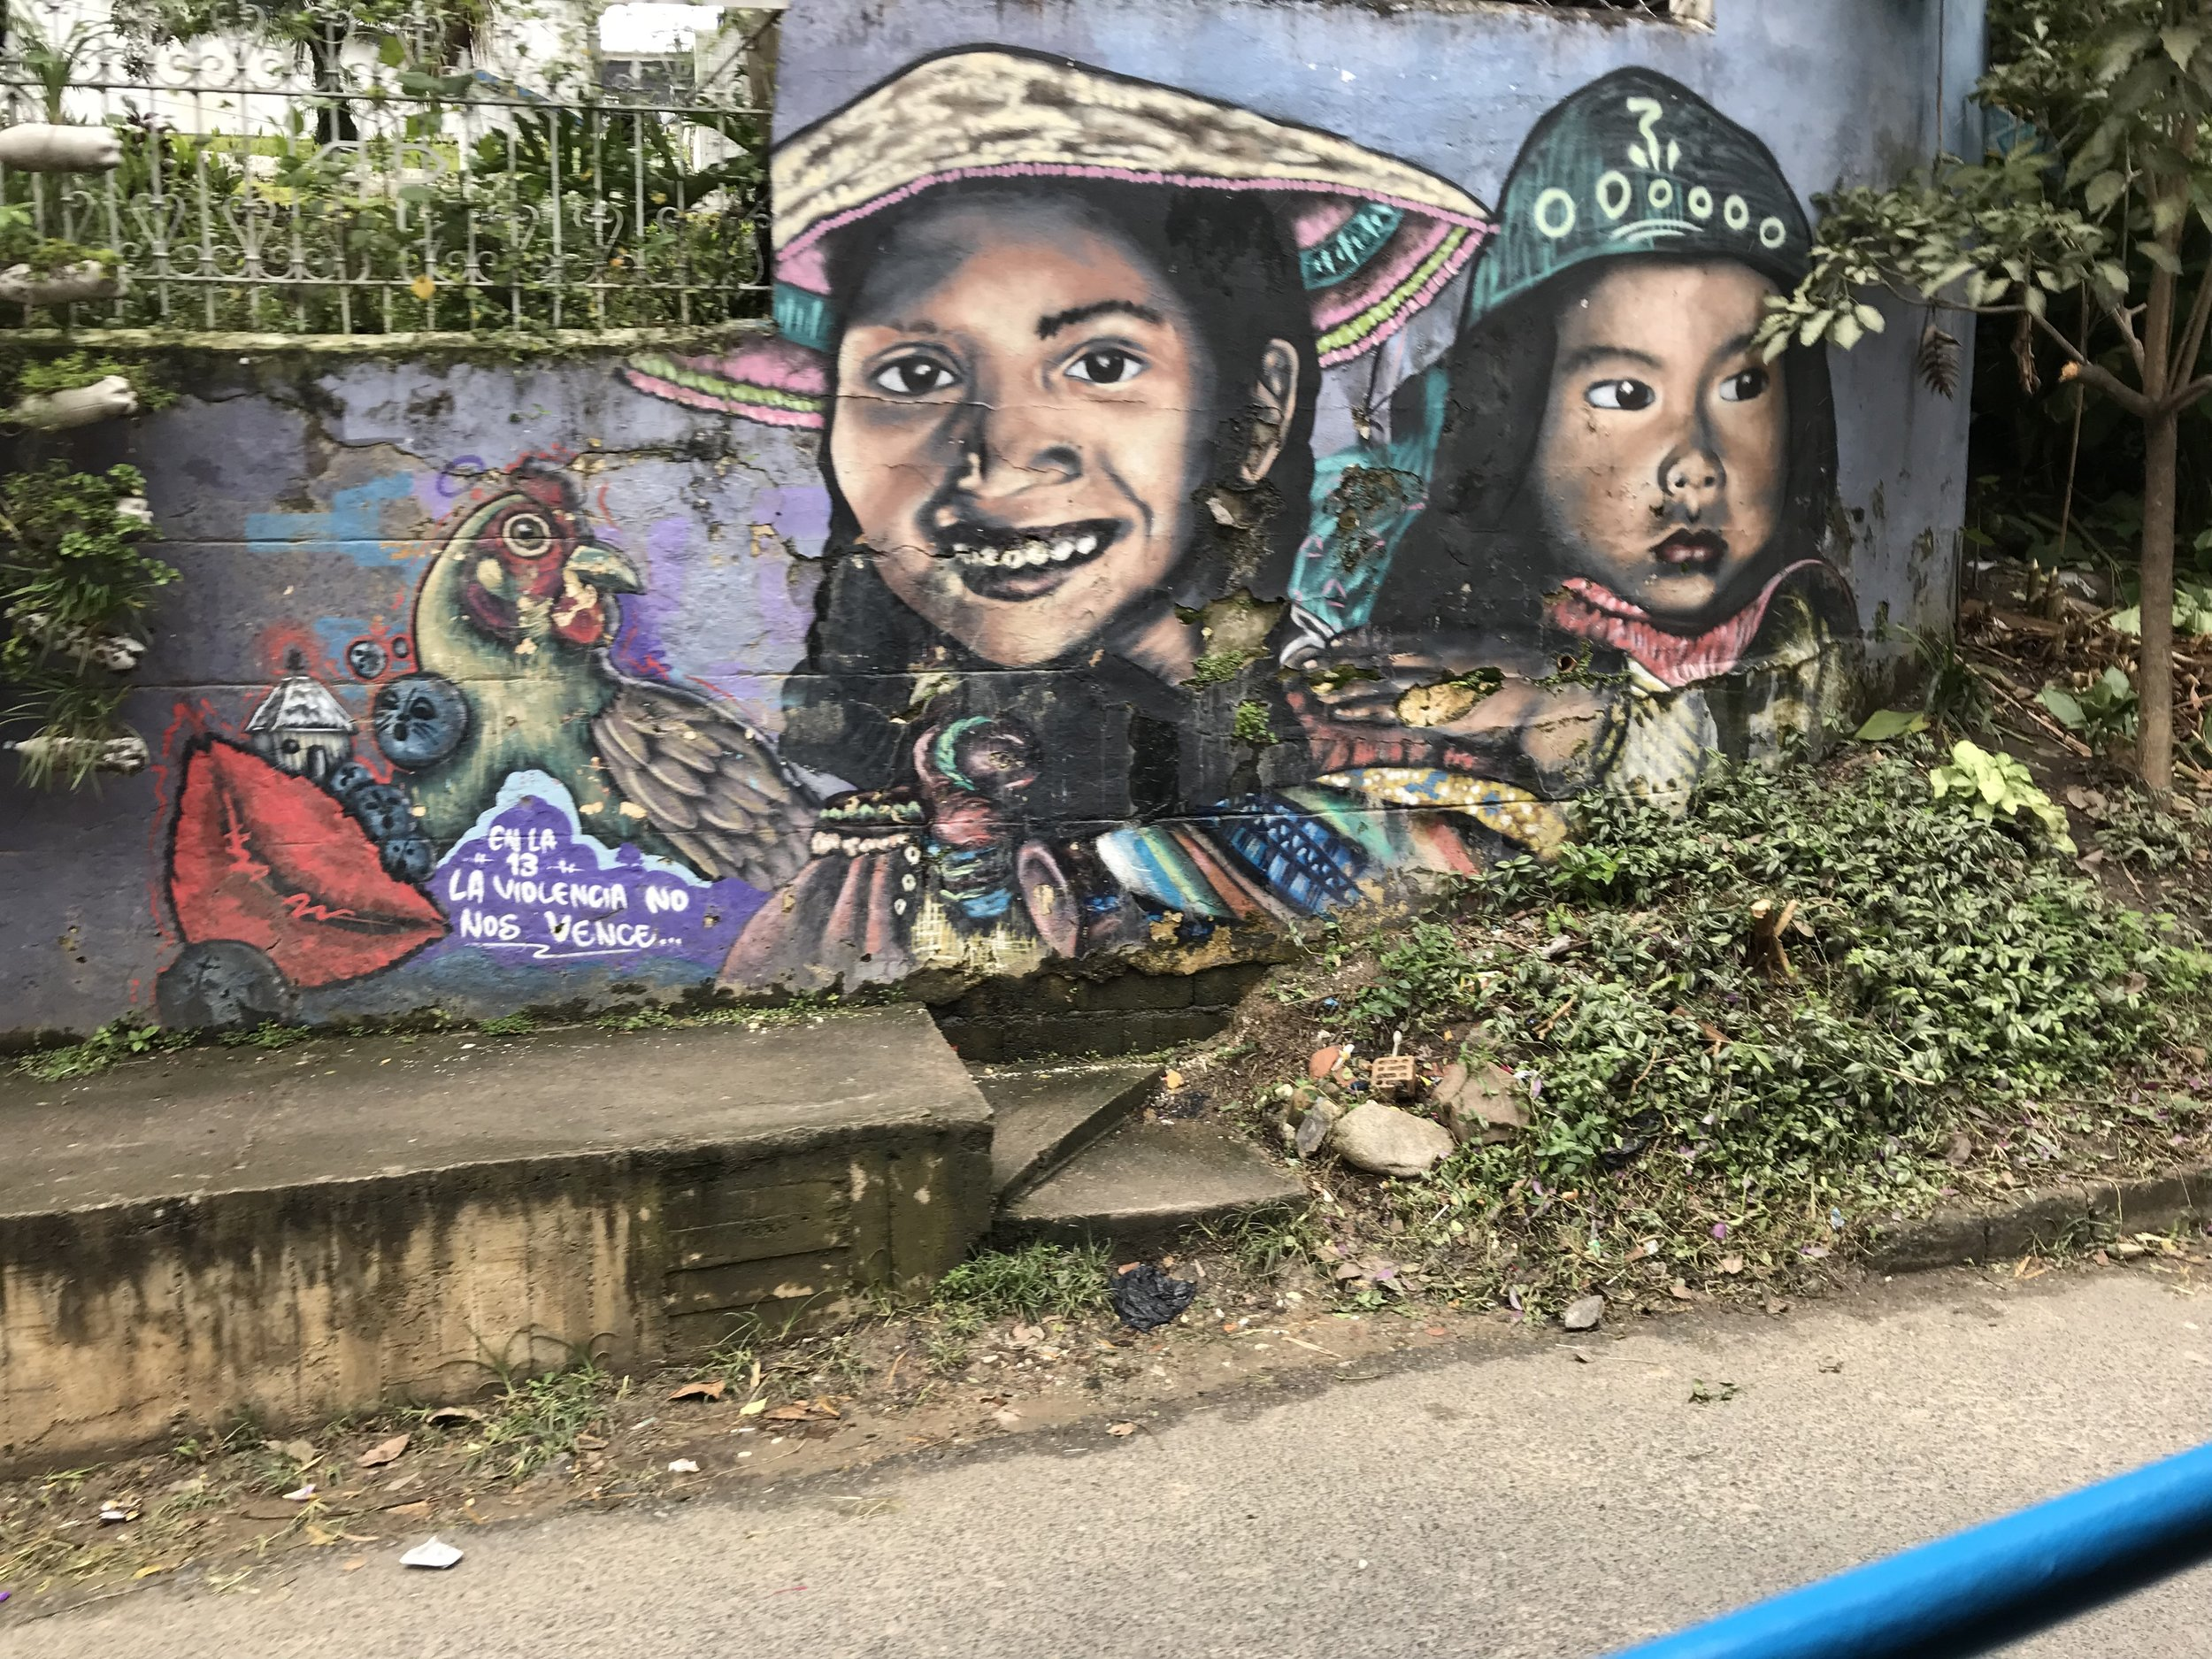 Graffiti honoring the dead in Medellin's Comuna 13